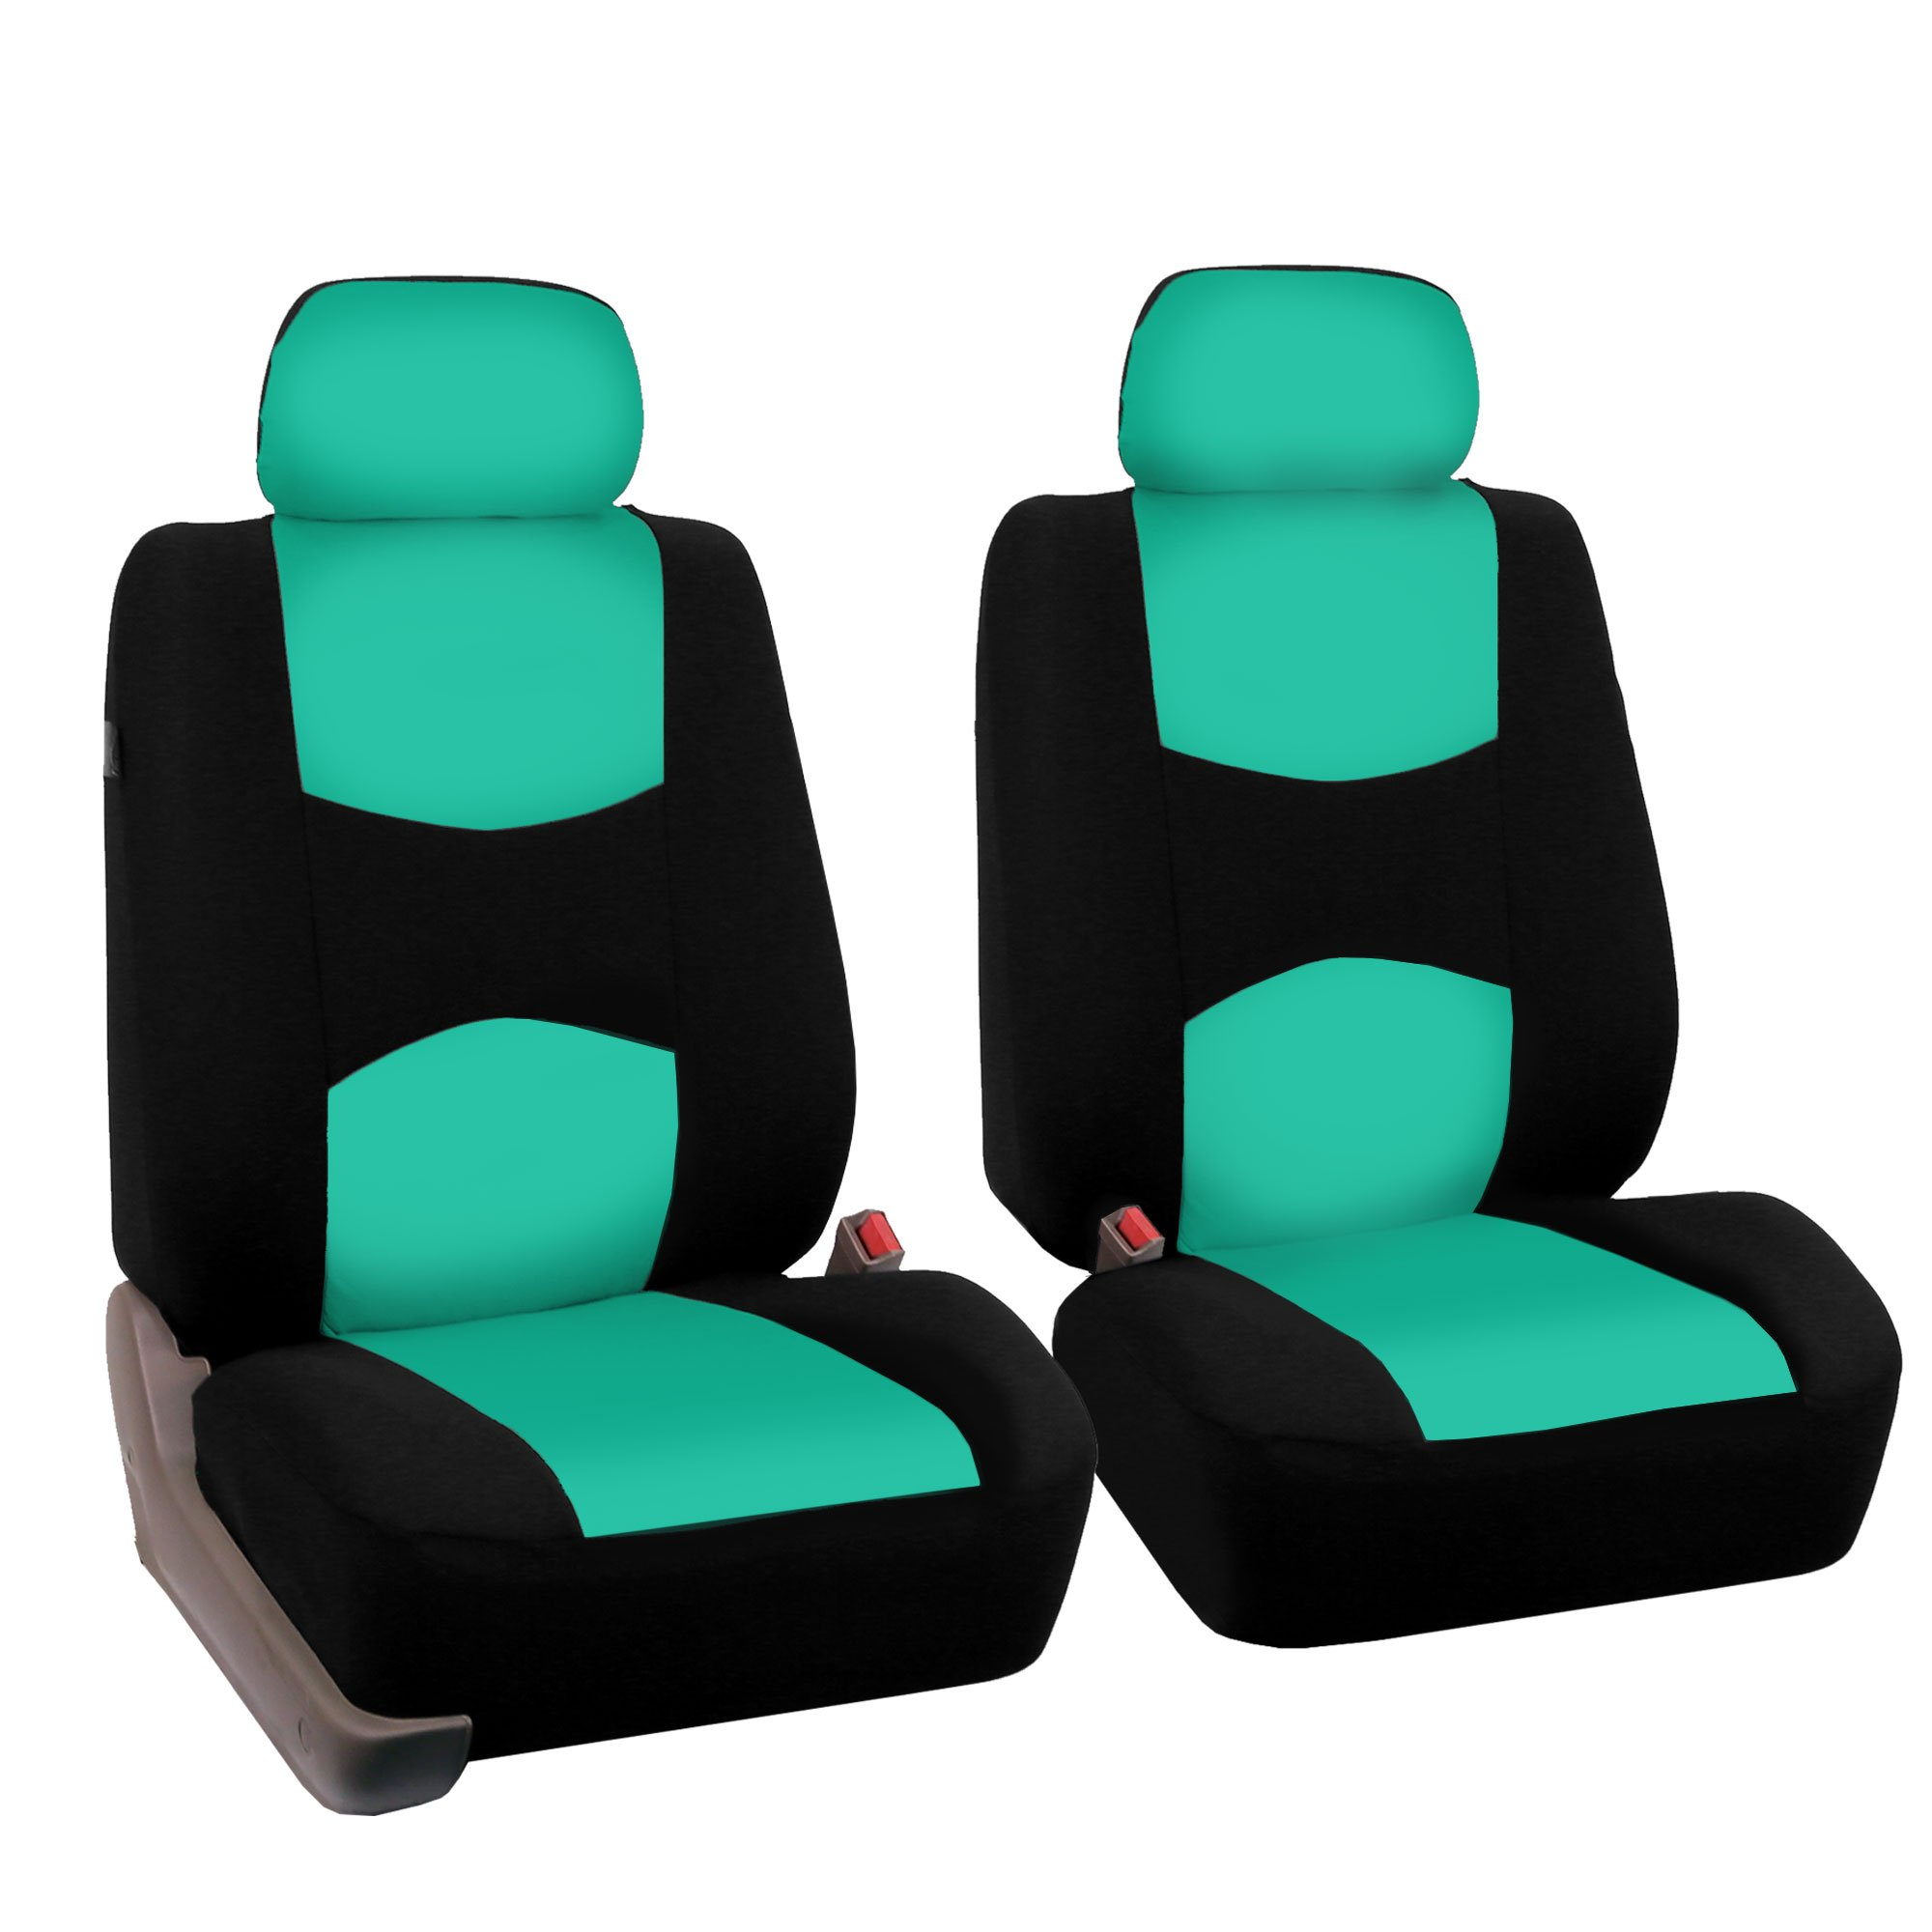 FH Group FB050MINT102 Mint Color Universal Fit Bucket Seat Cover by FH Group